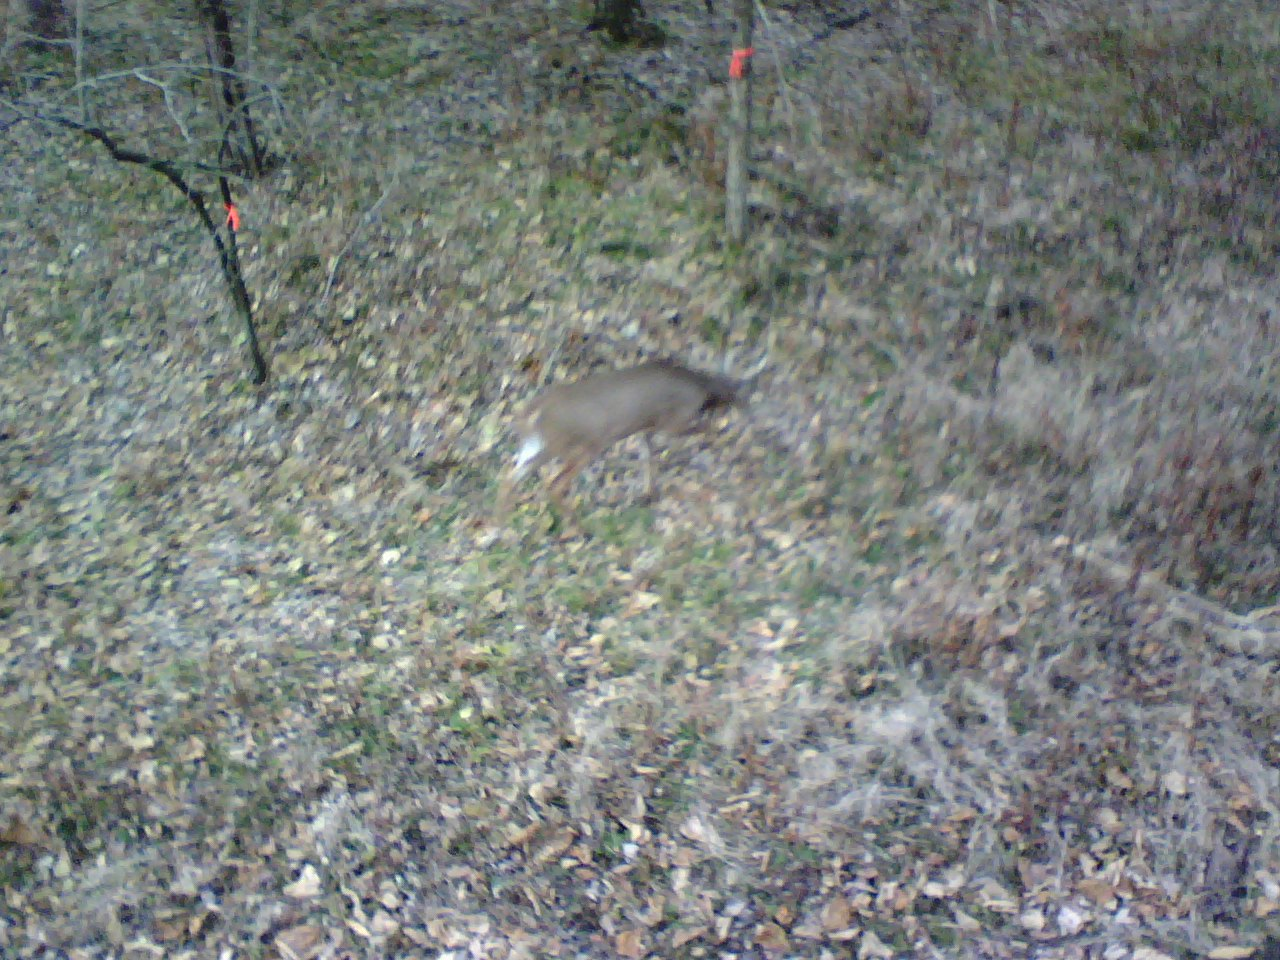 Look closely, a pic of whitetail buck he took from his deer stand in ...